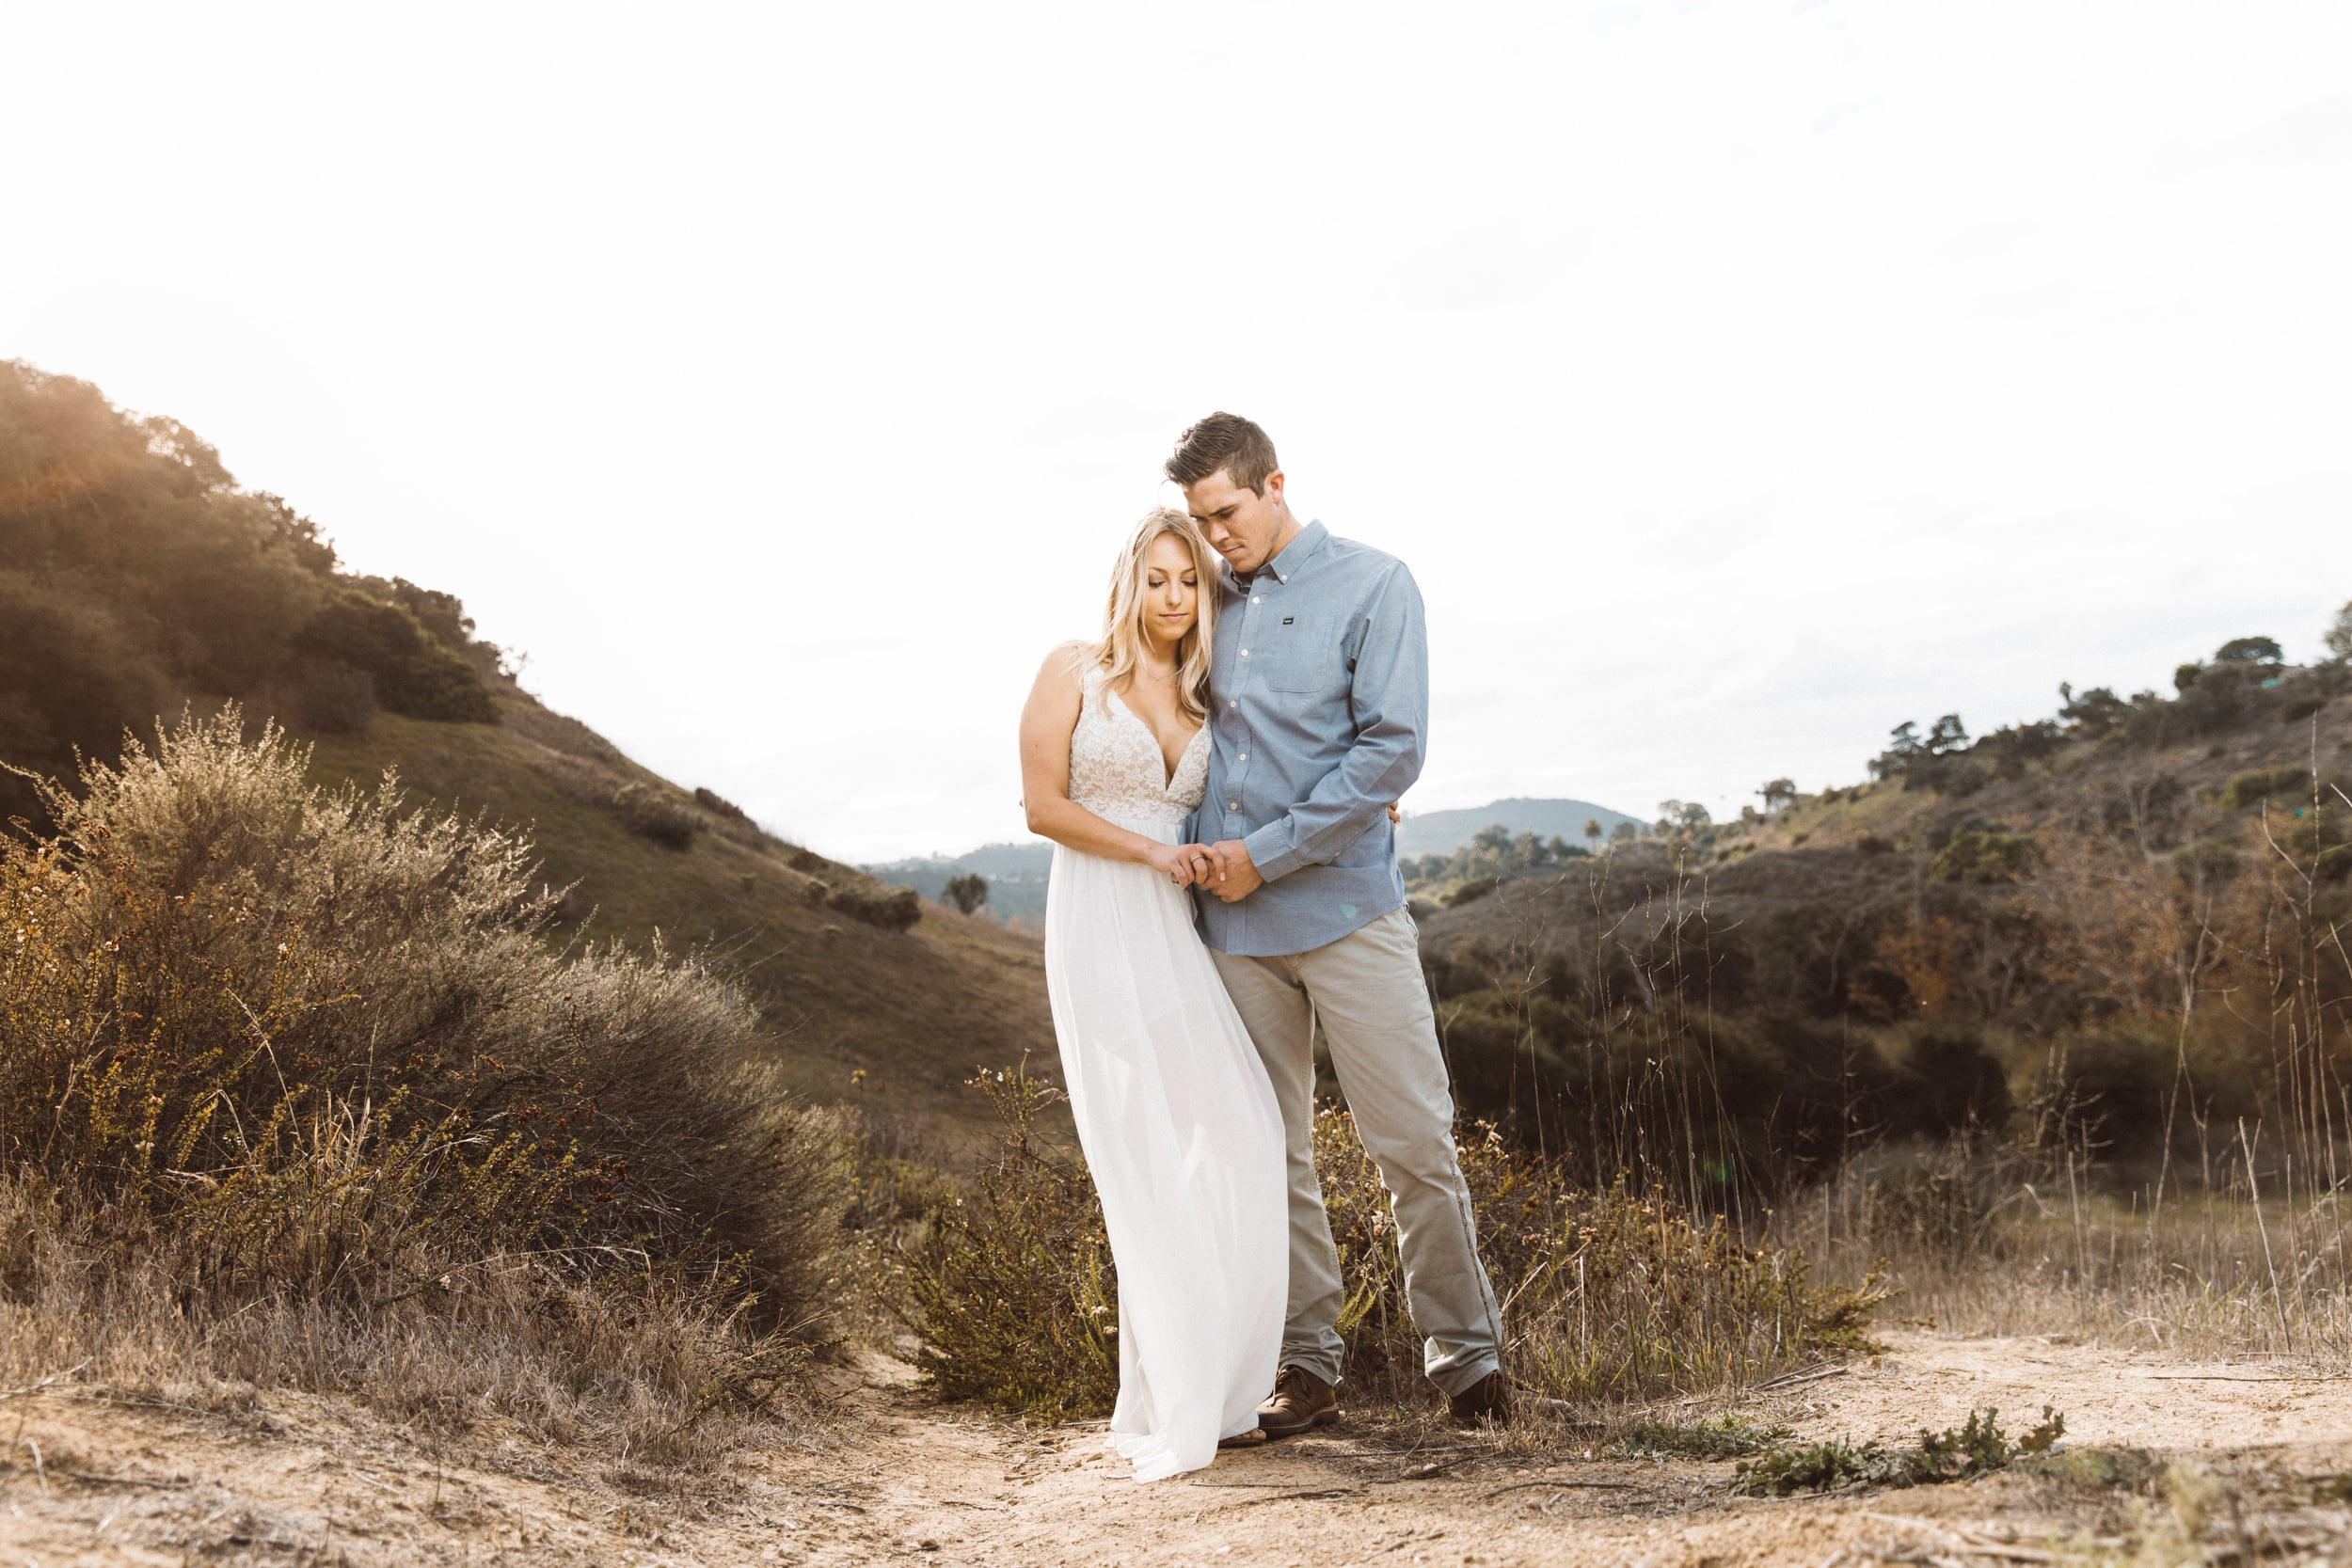 engagement_sandiego_california_love_aliciachandler_kaeli_shane-20.jpg